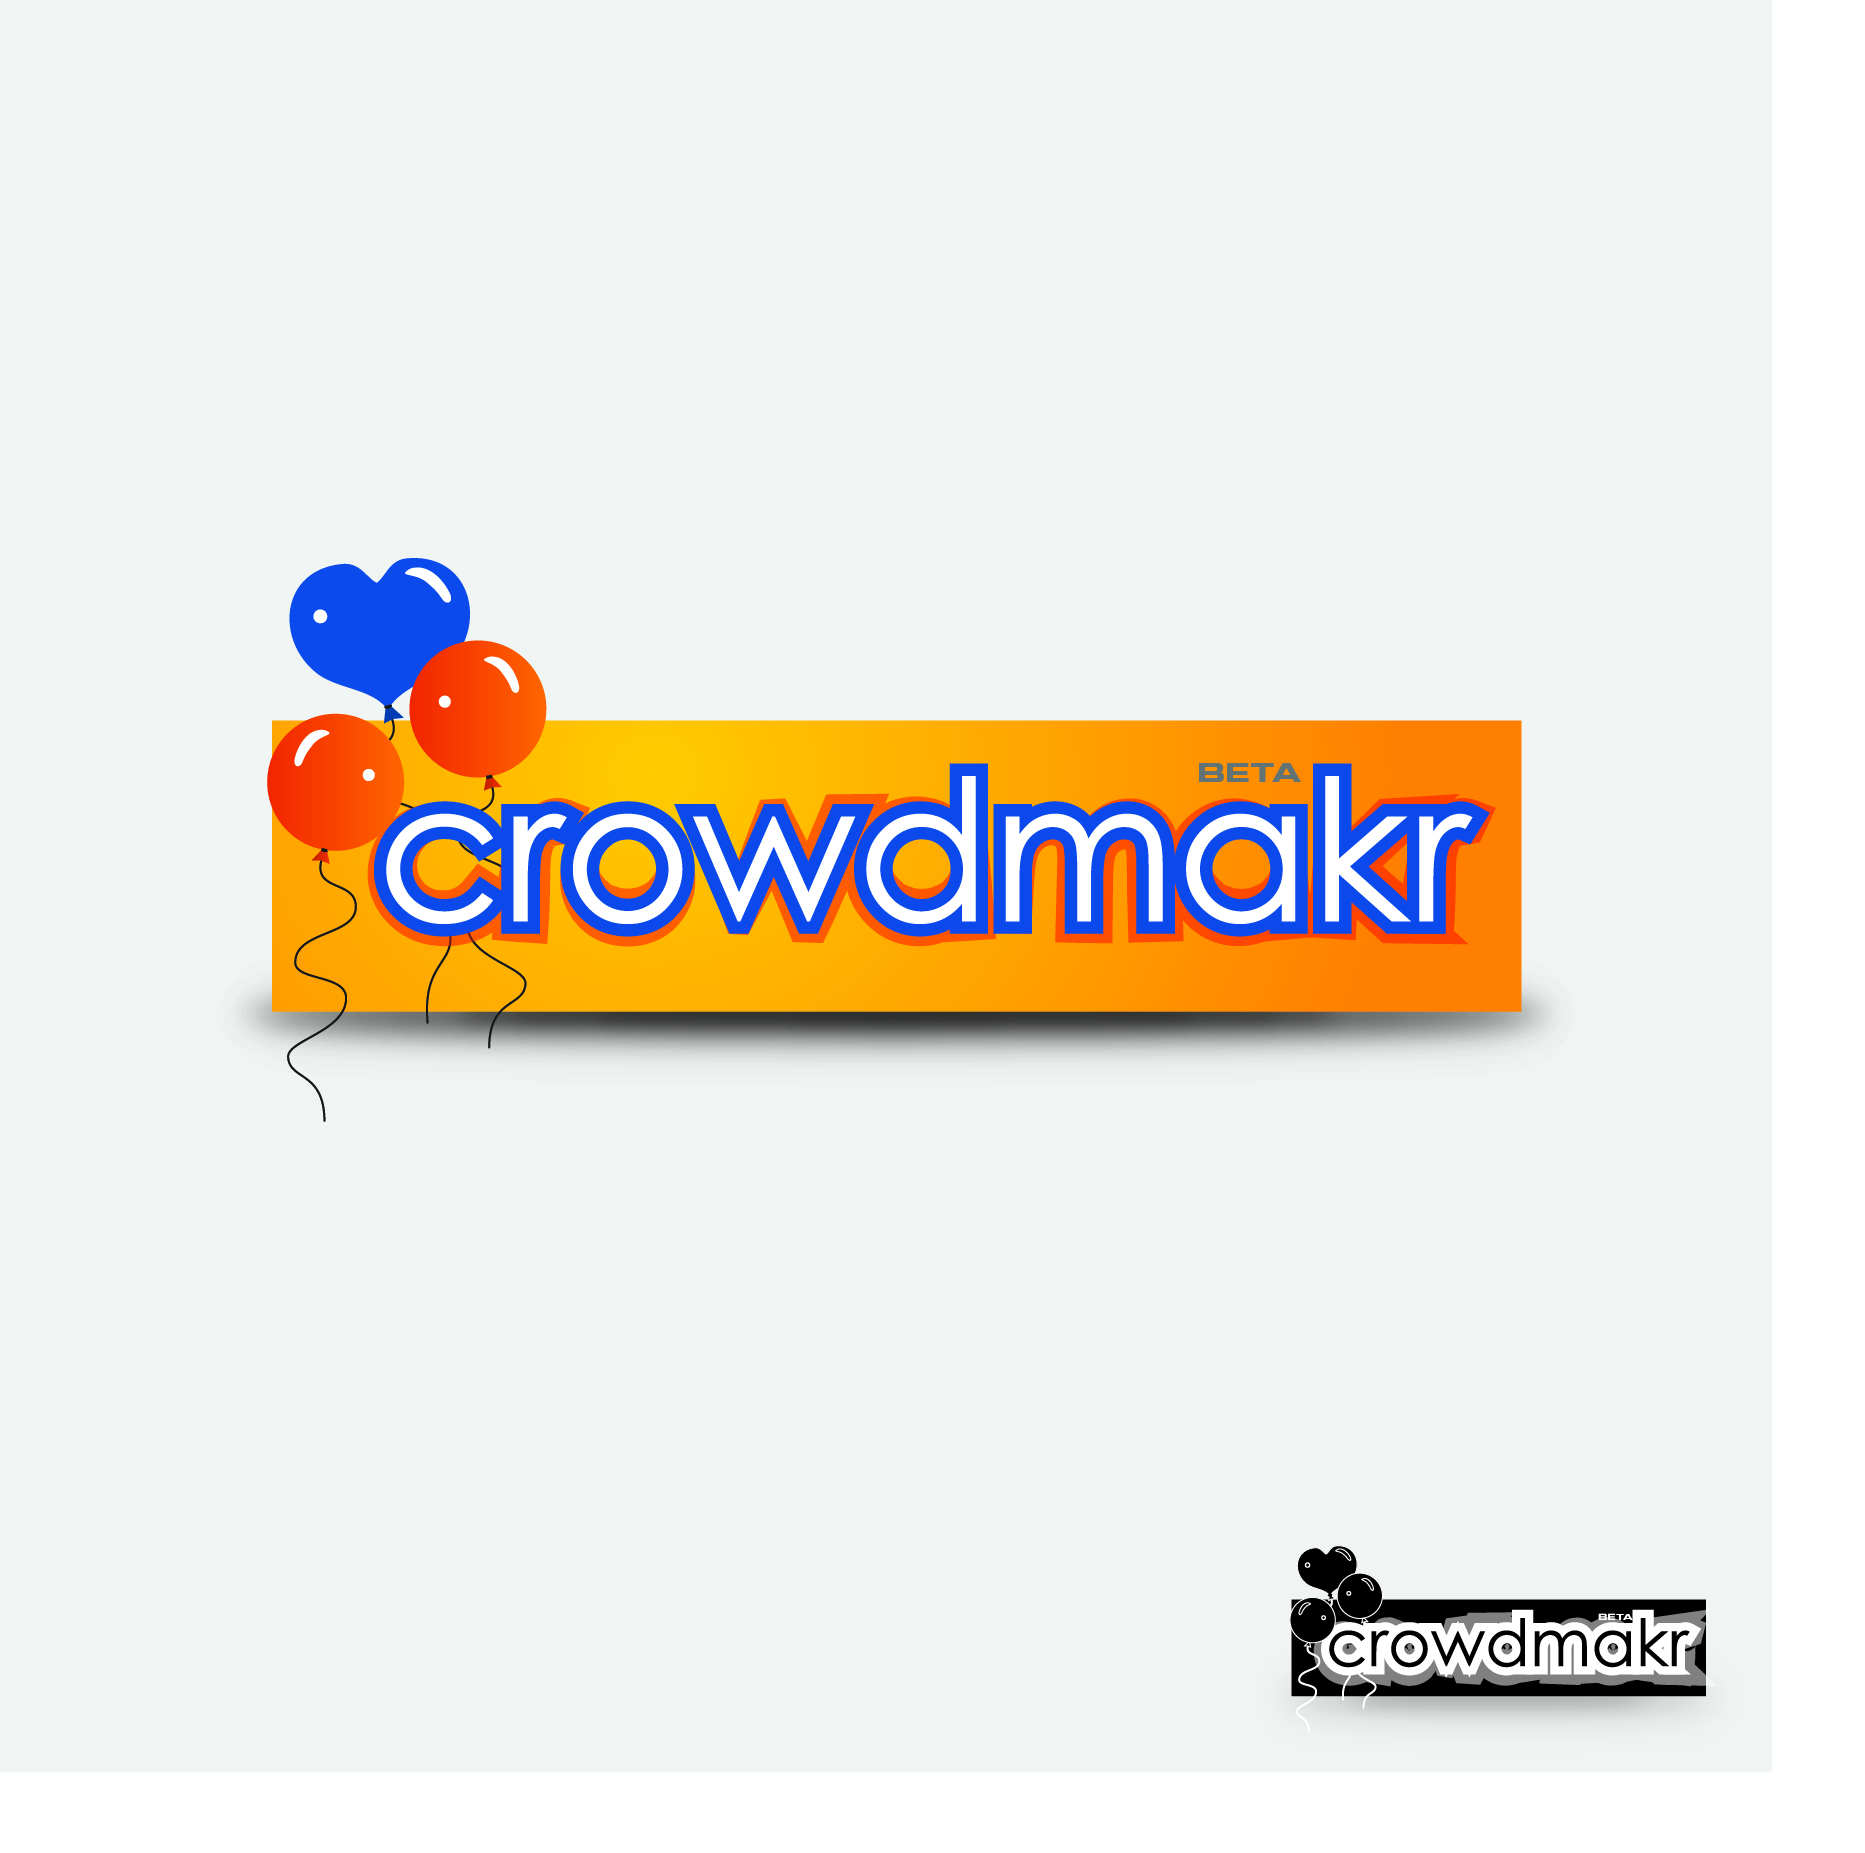 Logo Design by nTia - Entry No. 28 in the Logo Design Contest Unique Logo Design Wanted for crowdmakr.